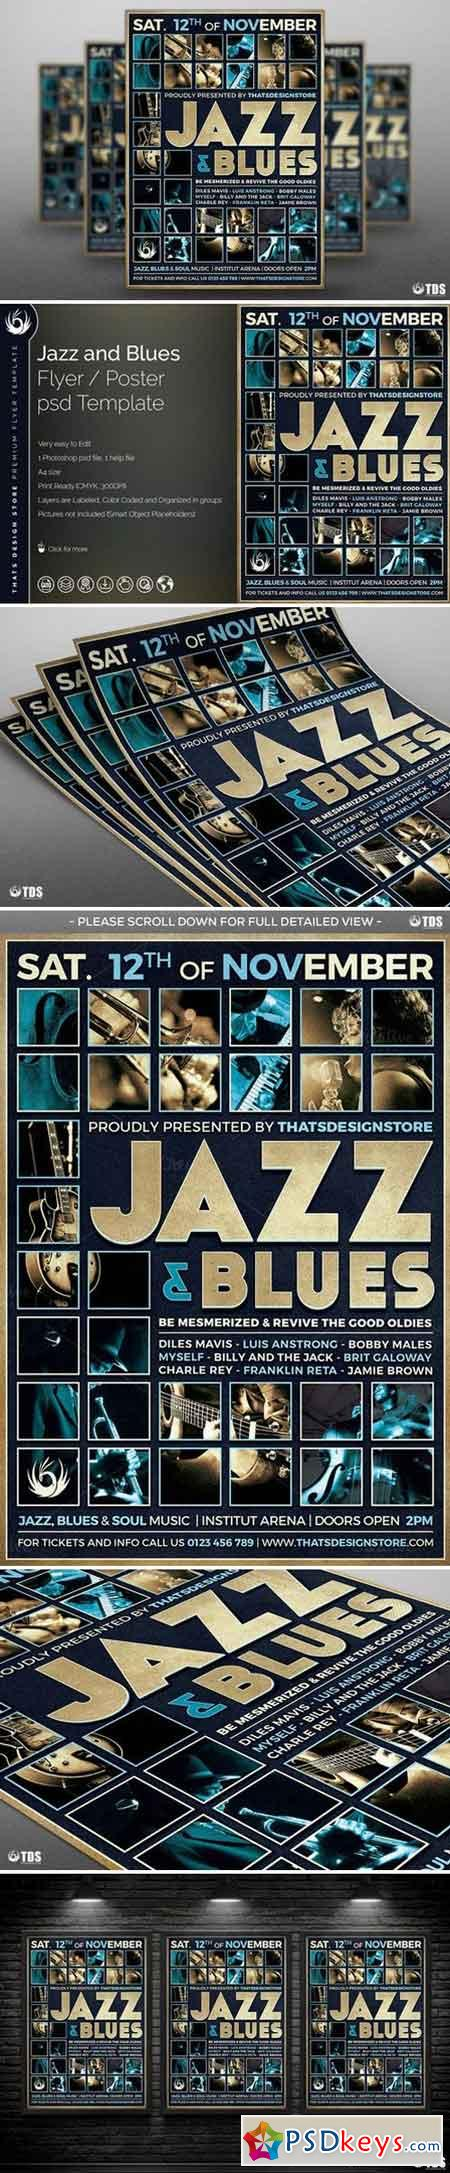 Jazz and Blues Flyer Template 797260